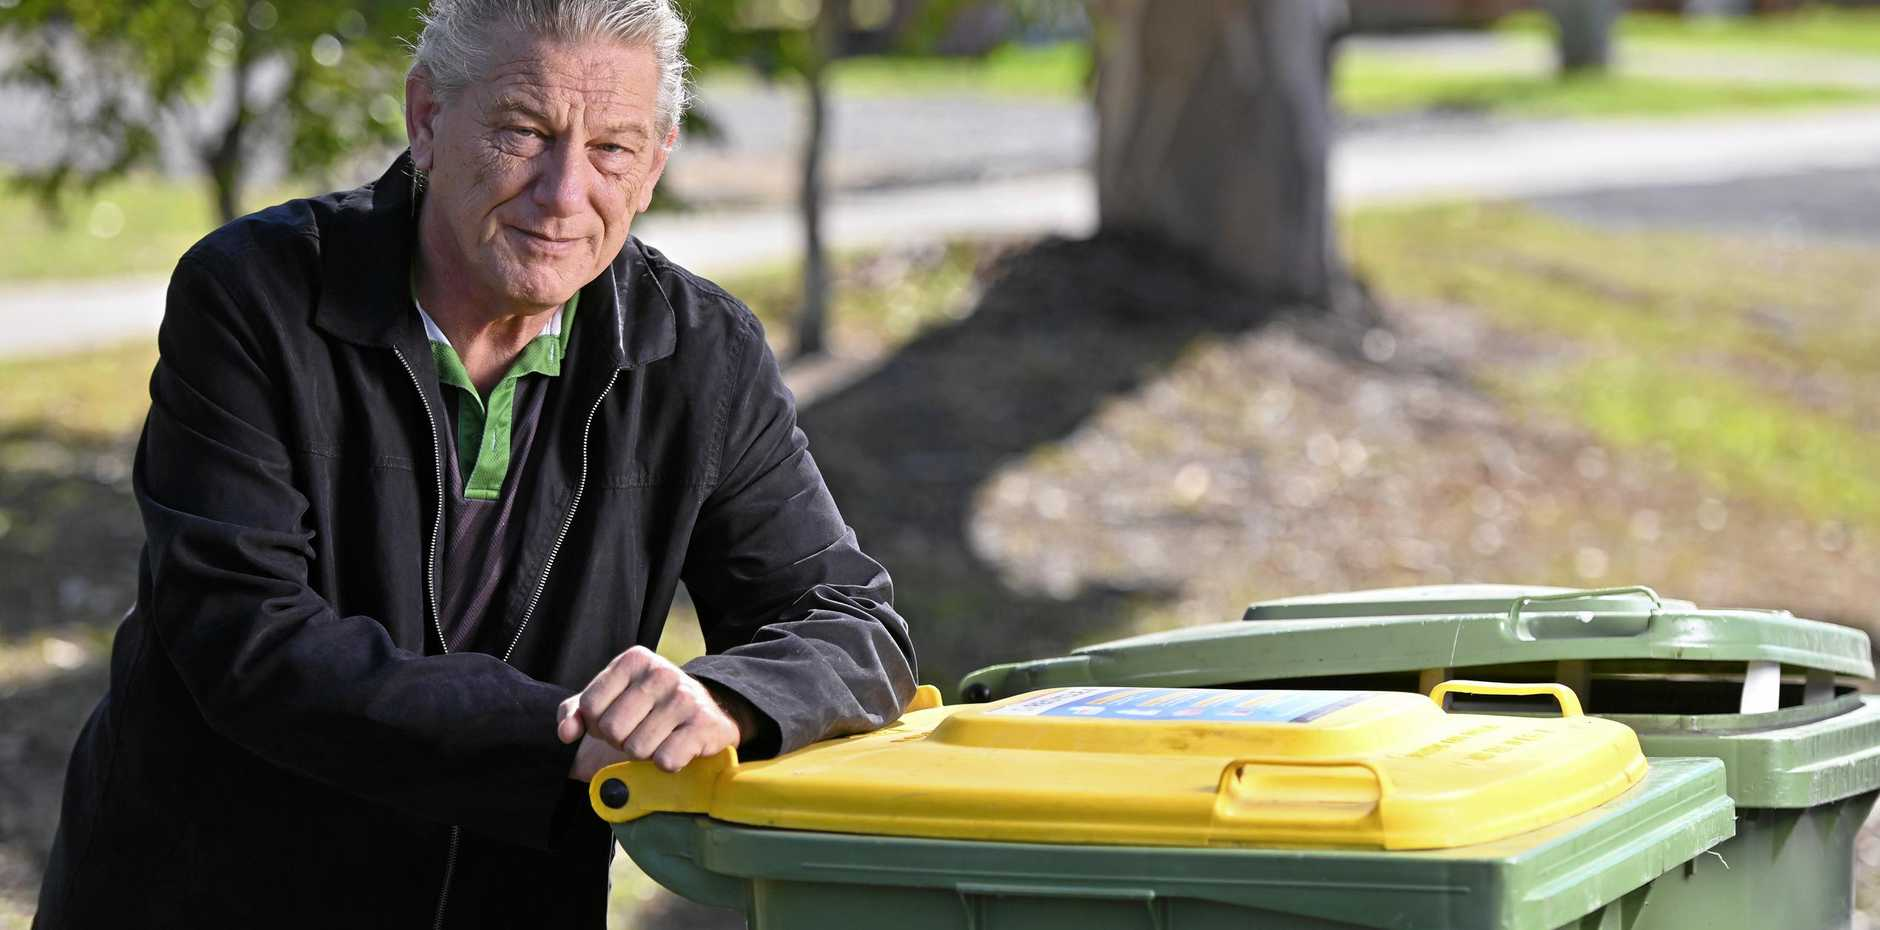 Description:Keith Owen has had a terrible time with the council, including being charged rates for his wheelie bins even though the house was inundated from the floods.